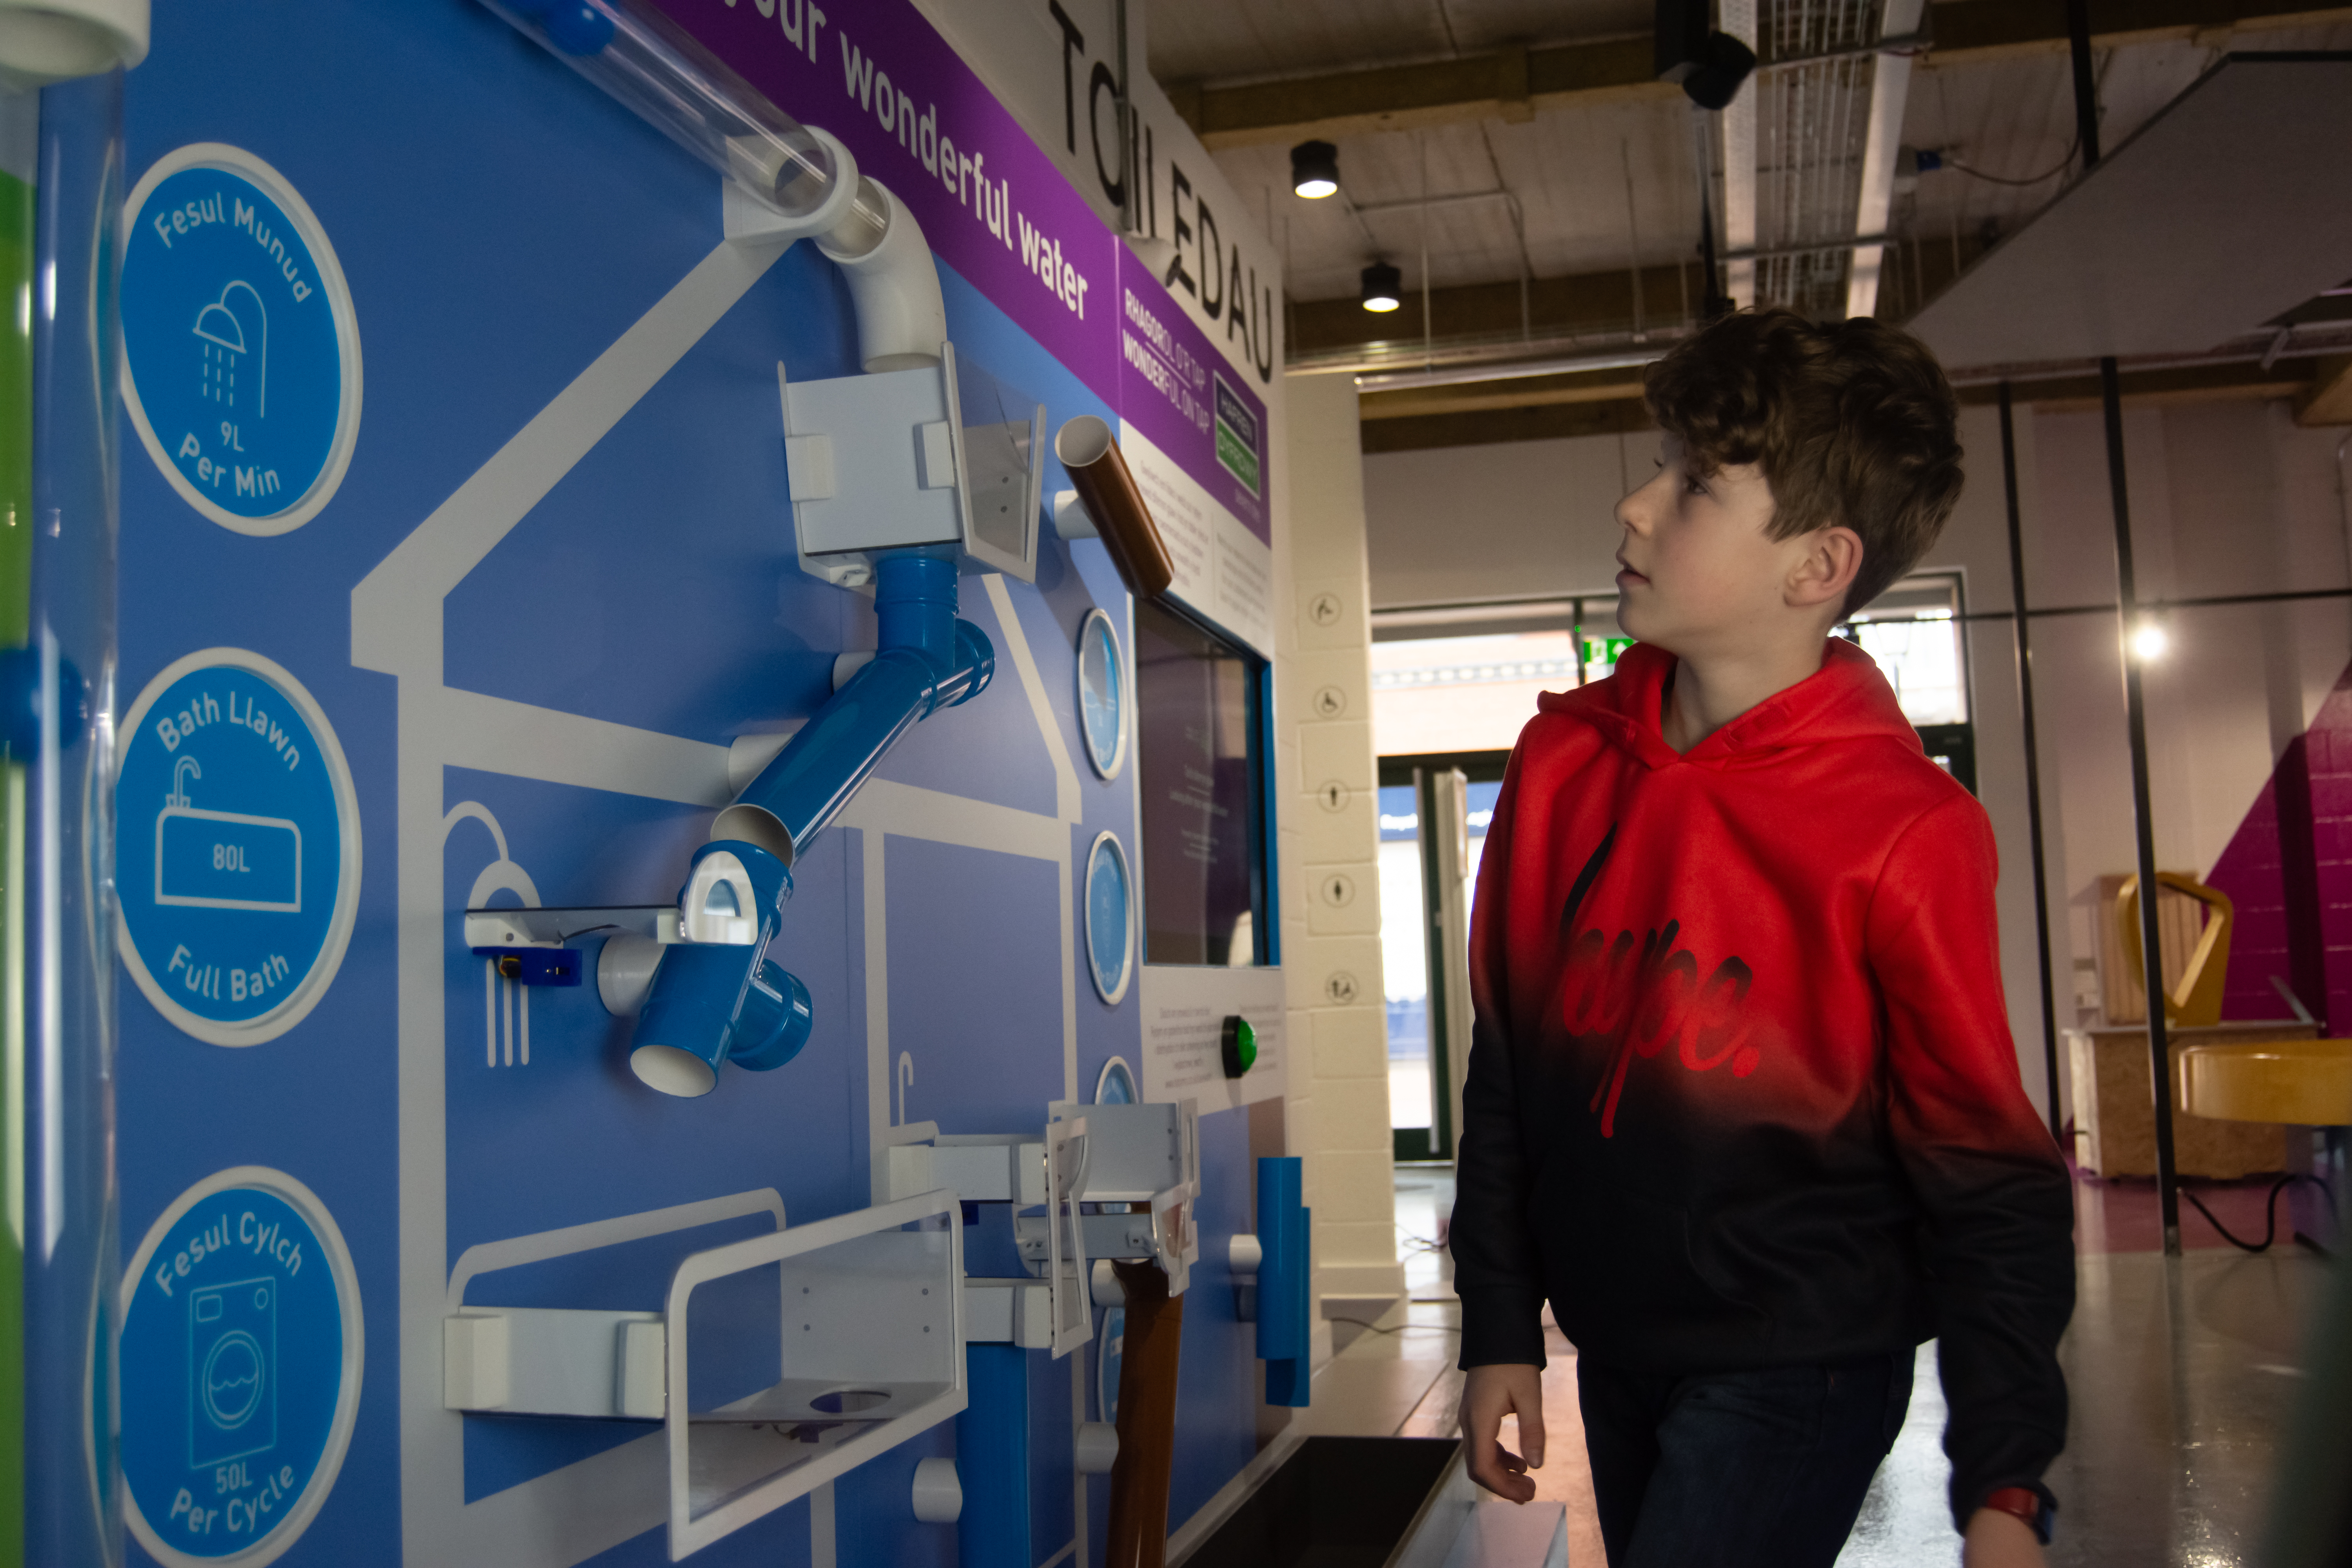 New water exhibits at science discovery centre thanks to sponsorship